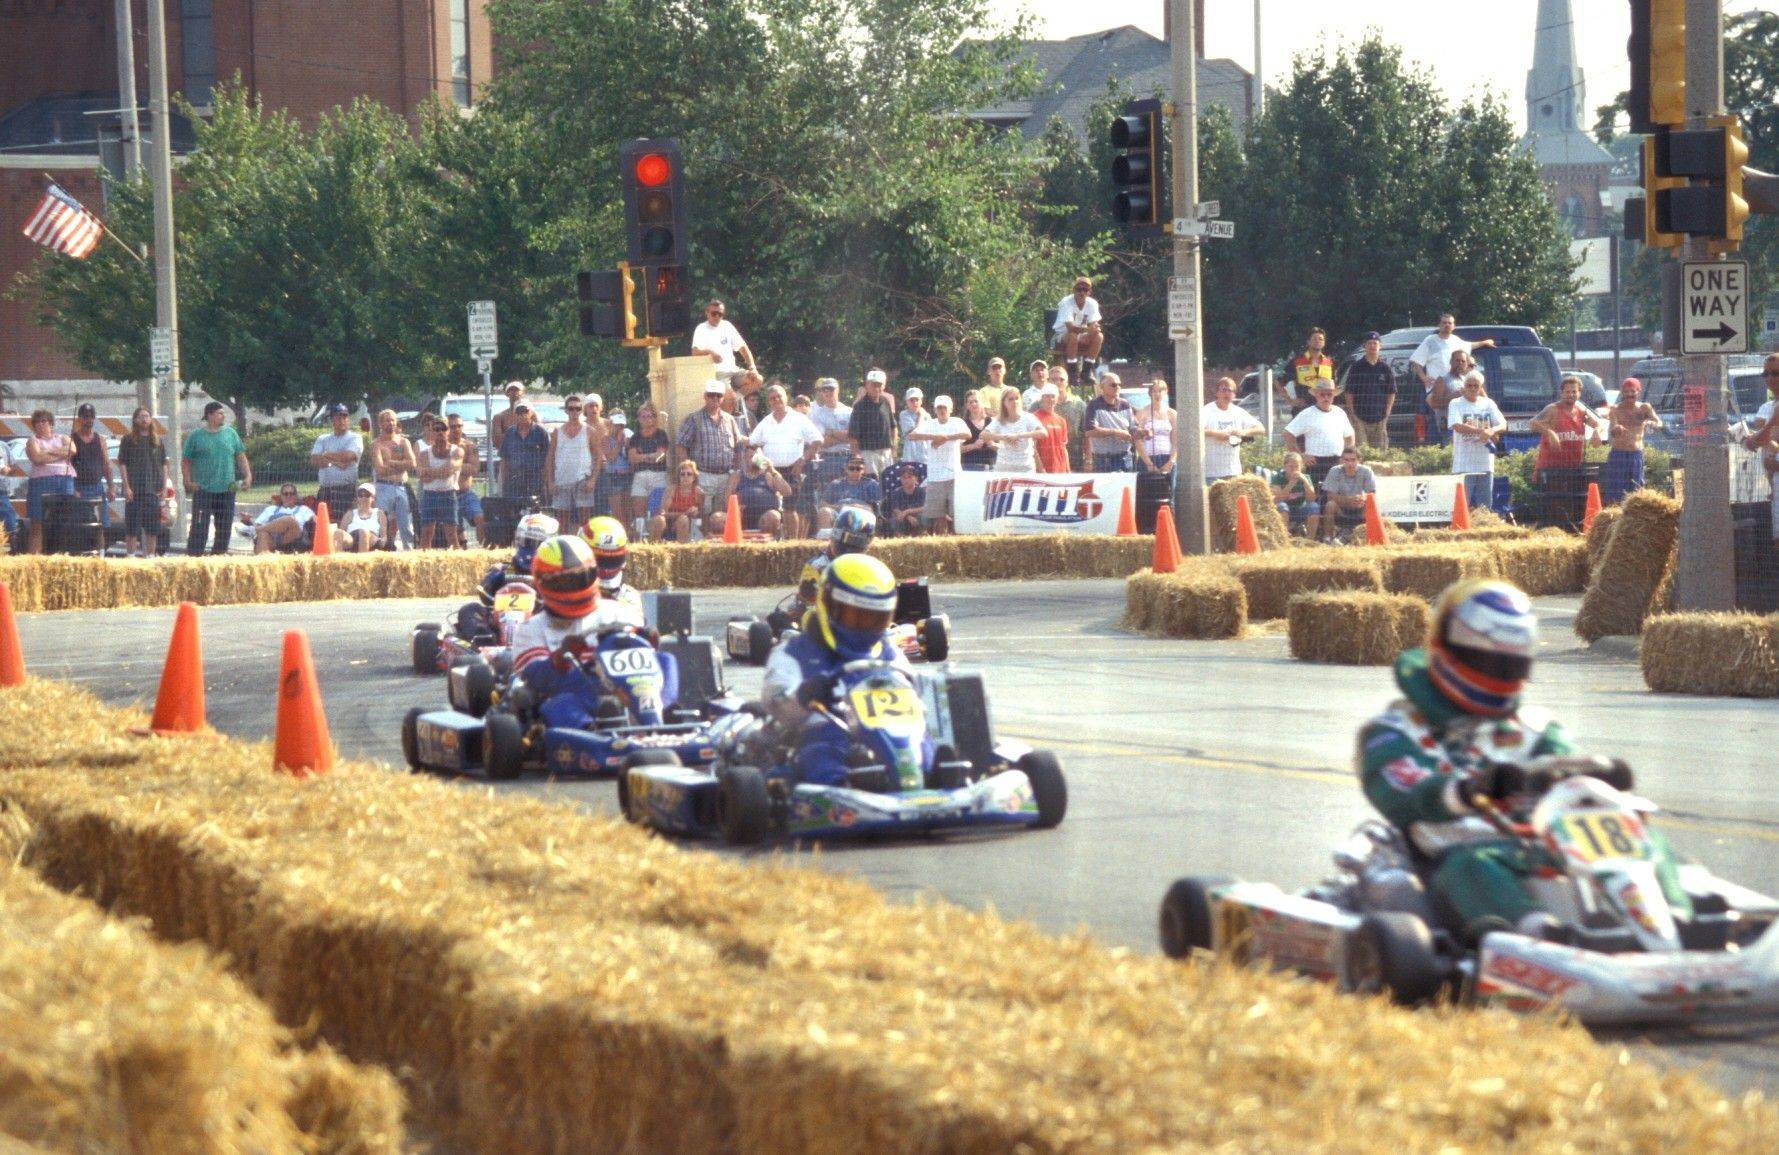 The annual Rock Island Grand Prix go-cart race attracts hundreds of international drivers to the Quad Cities during Labor Day weekend.